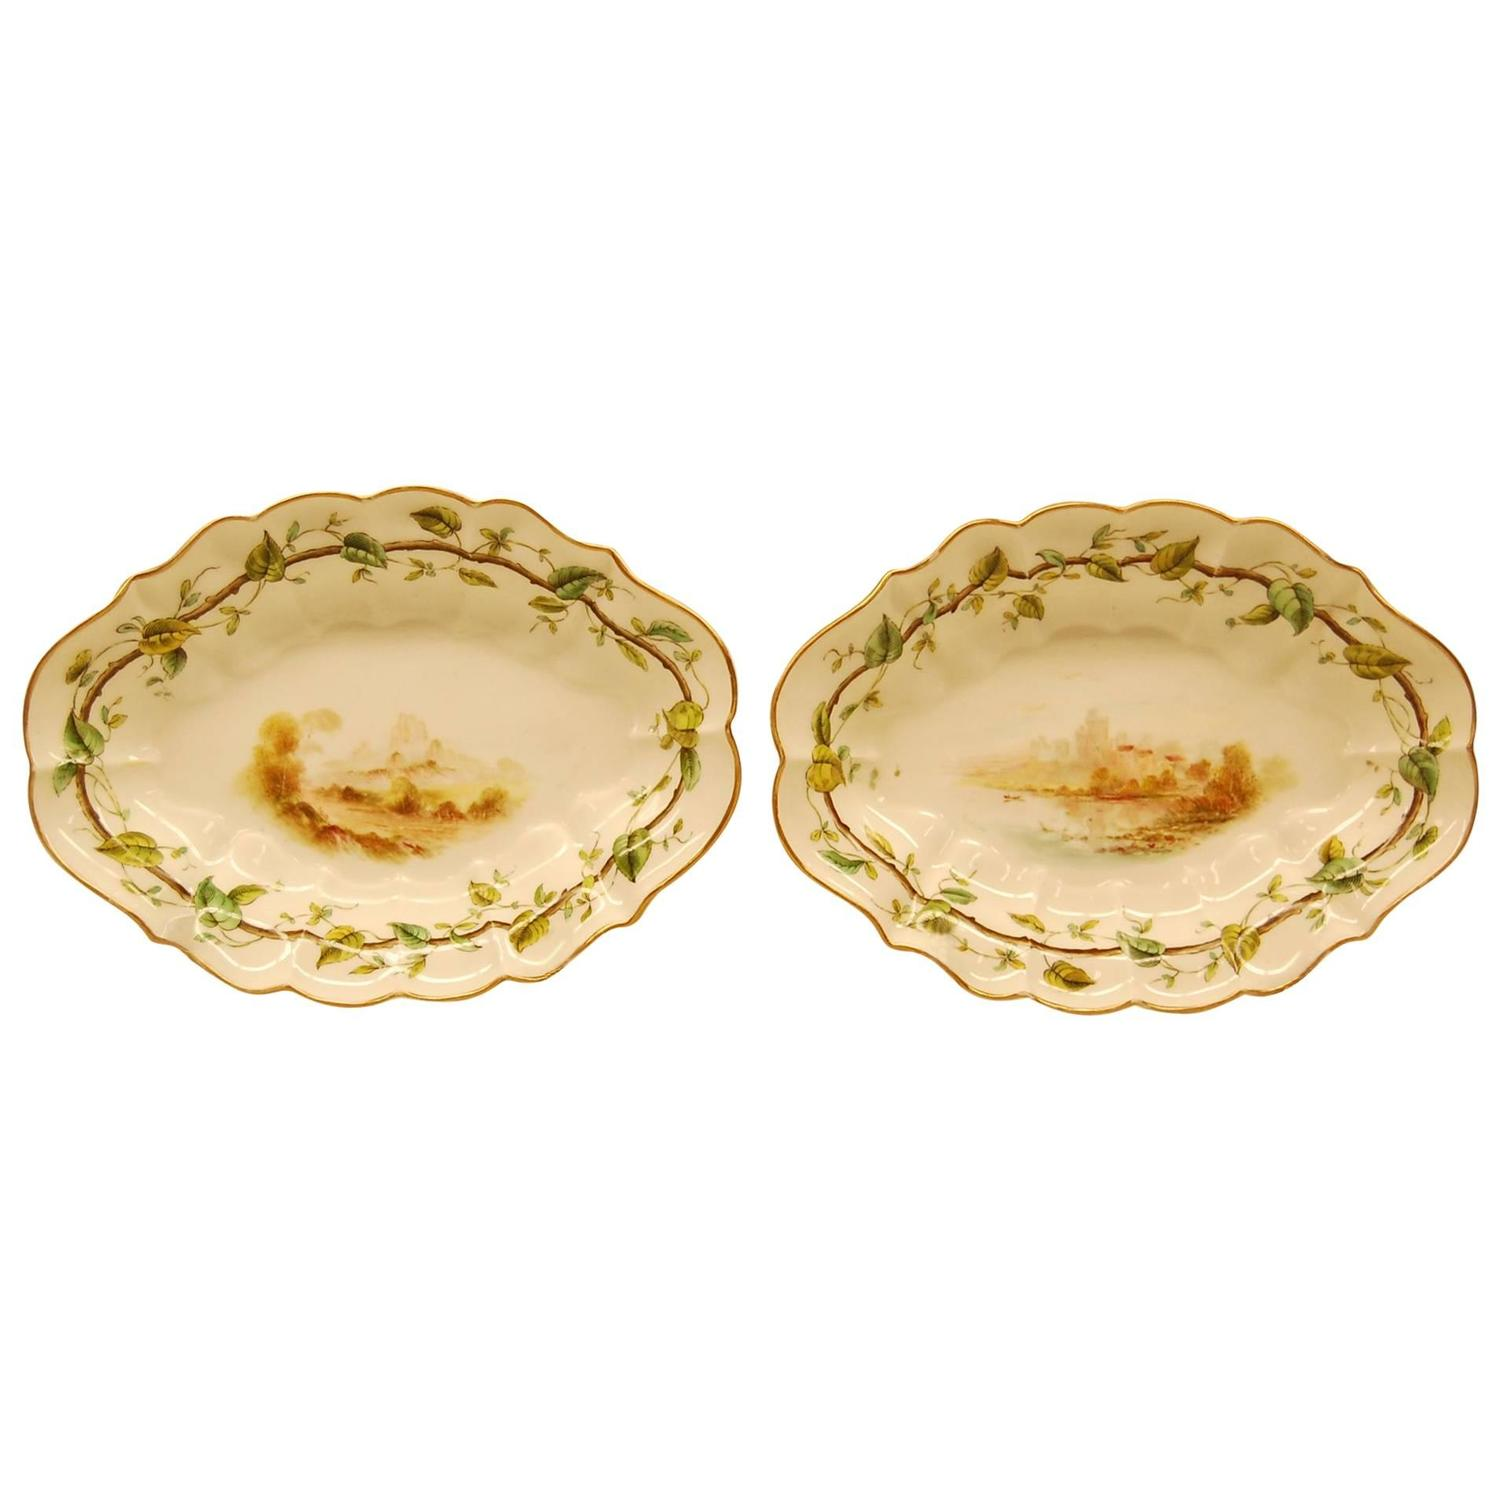 dating lenox backstamps The bonbonniere, or trinket box, in the antique shop is exquisite, petite, painted porcelain -- and worth the asking price if it's authentic limoges.